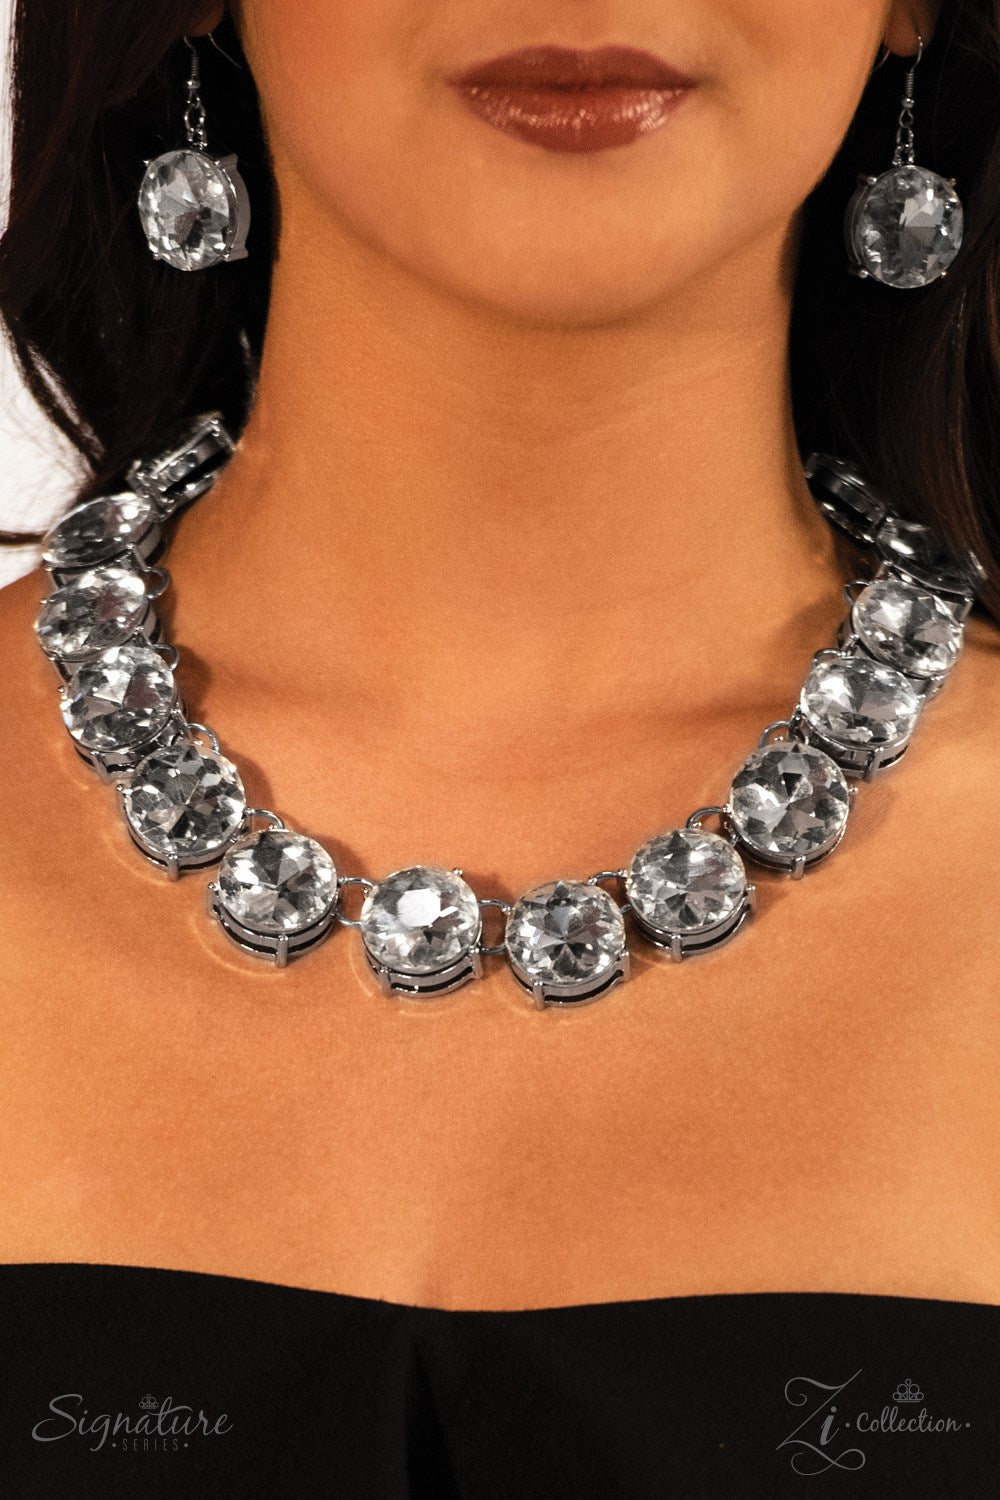 The Marissa - Paparazzi Jewelry Zi Collection necklace